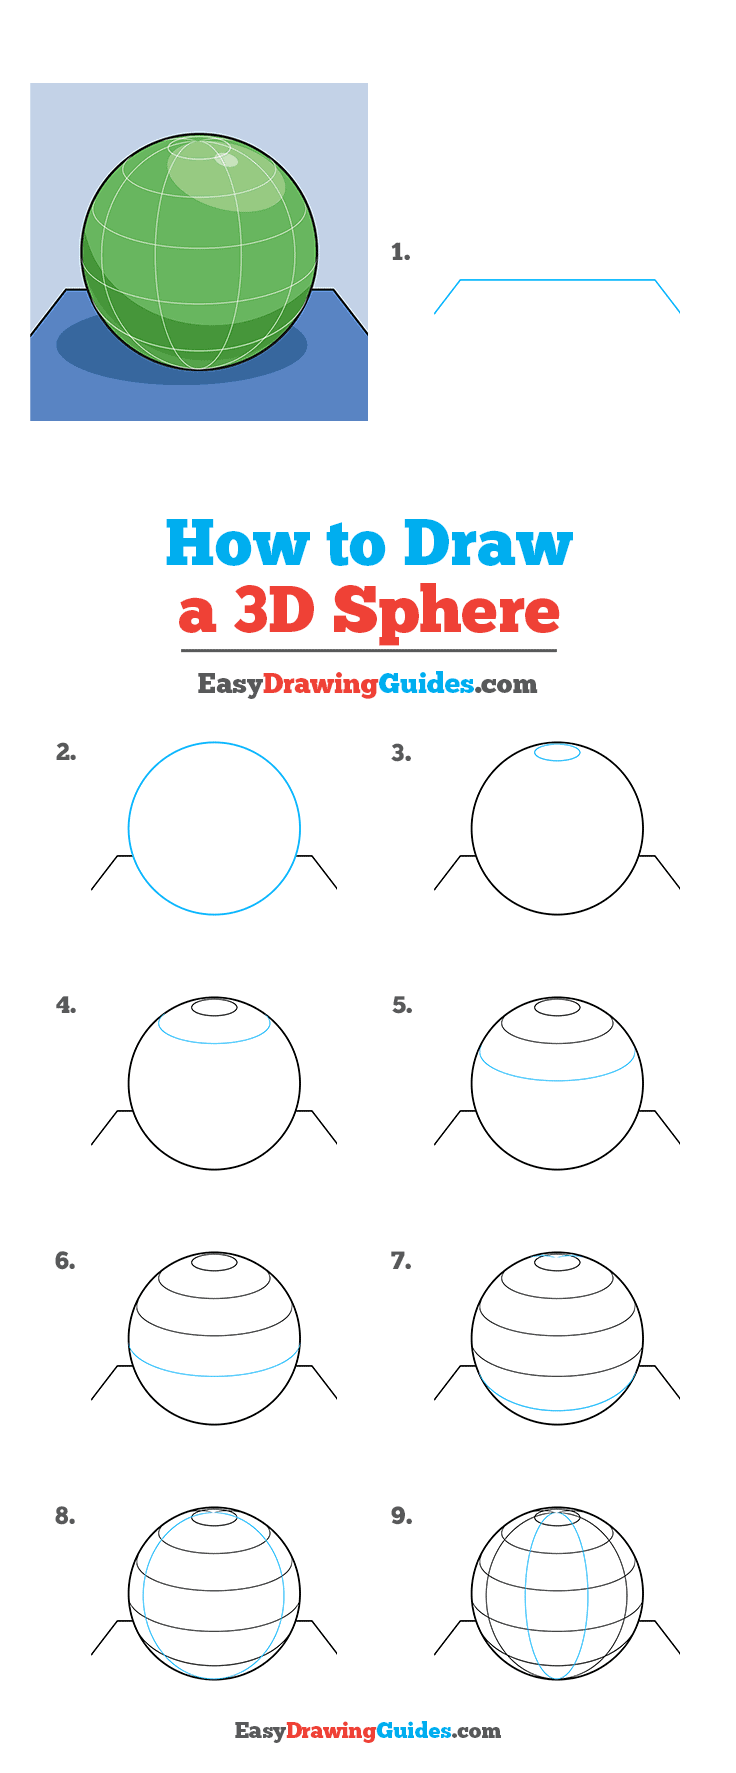 How to Draw a 3D Sphere Step by Step Tutorial Image